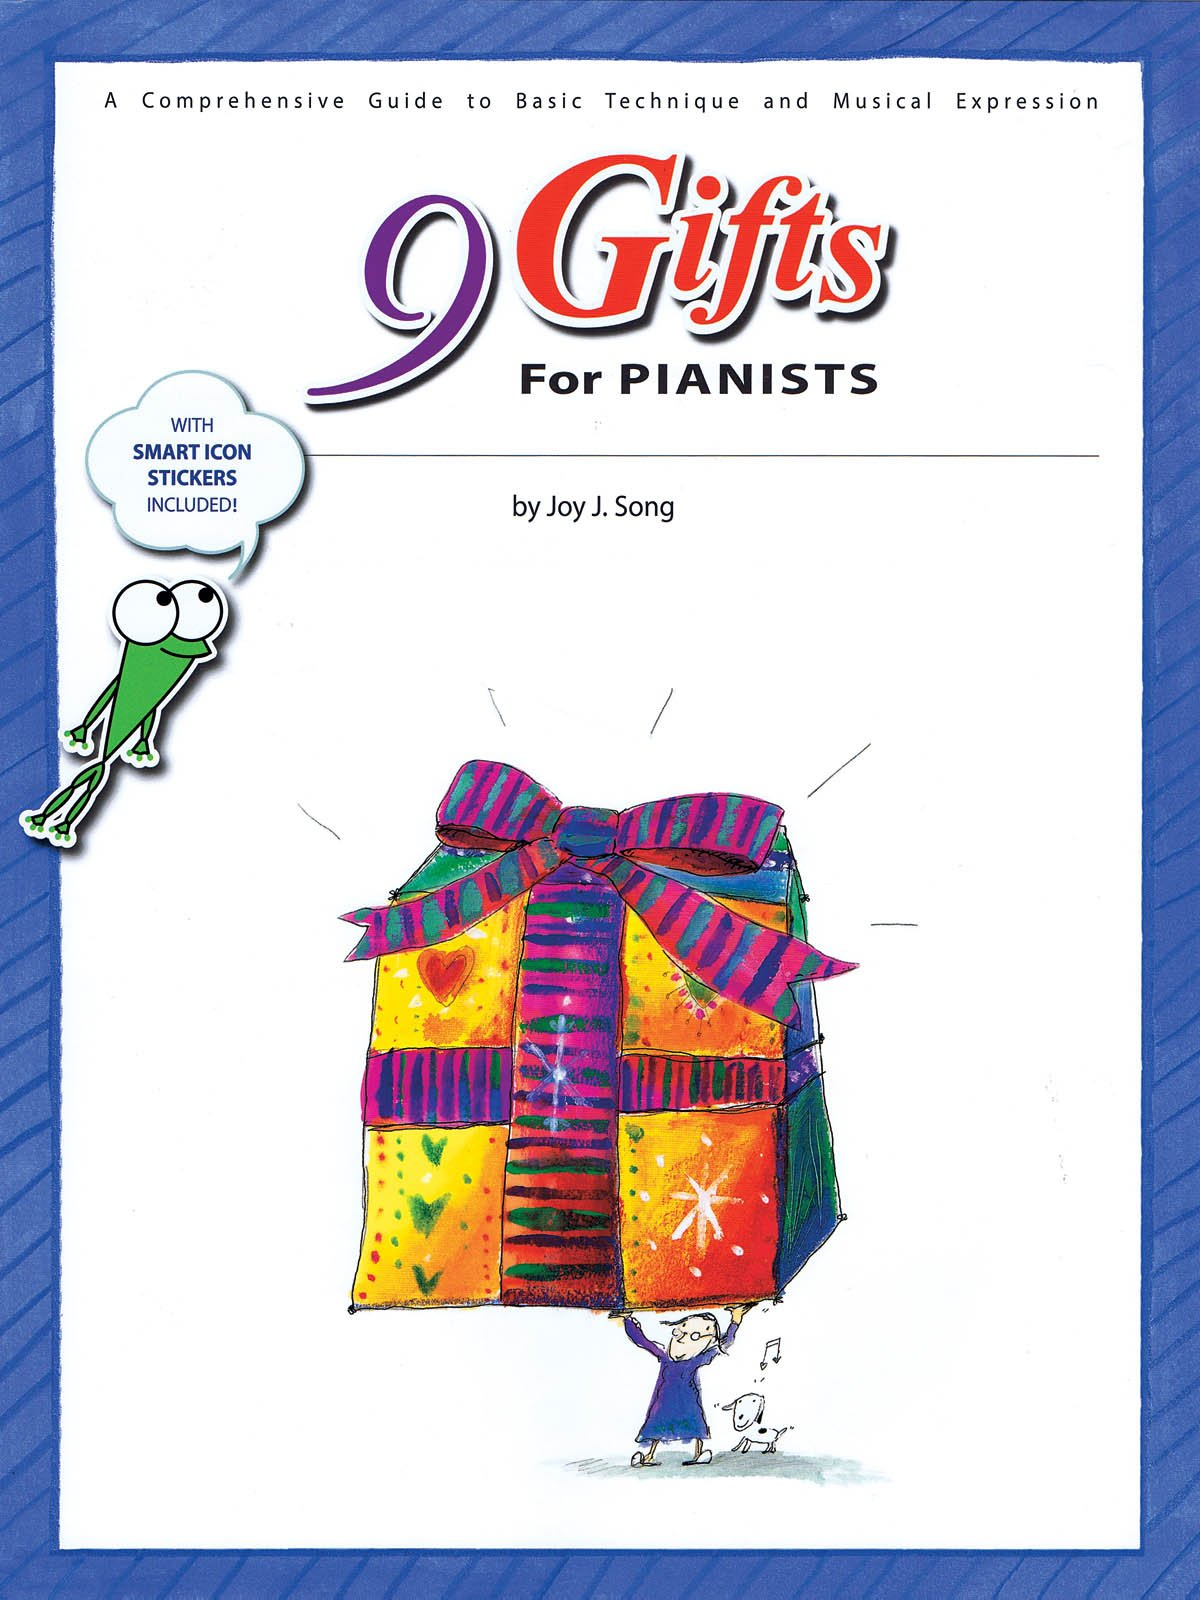 9 Gifts for Pianists - A Comprehensive Guide to Basic Technique and Musical Expression